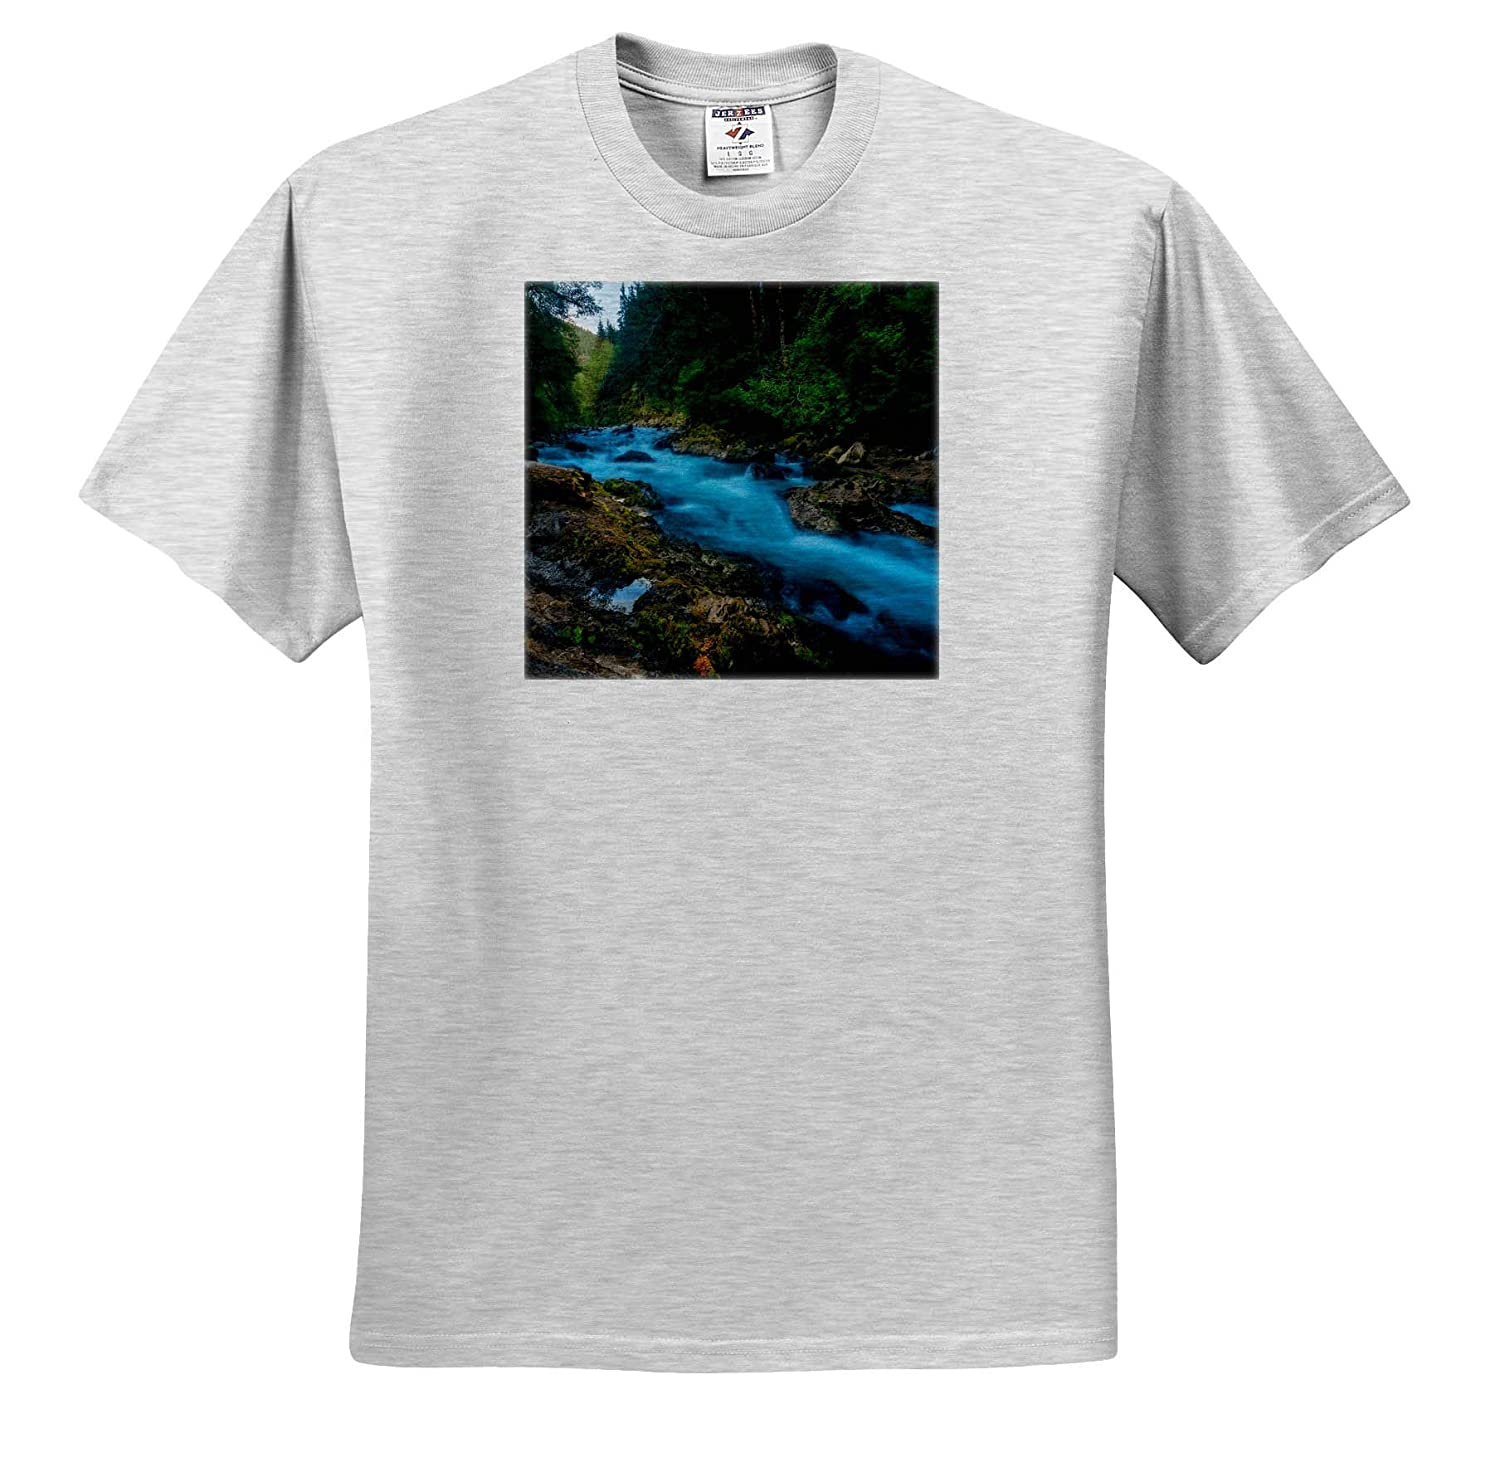 Landscapes ts/_309070 3dRose Mike Swindle Photography Adult T-Shirt XL River Flowing Through Green Forest